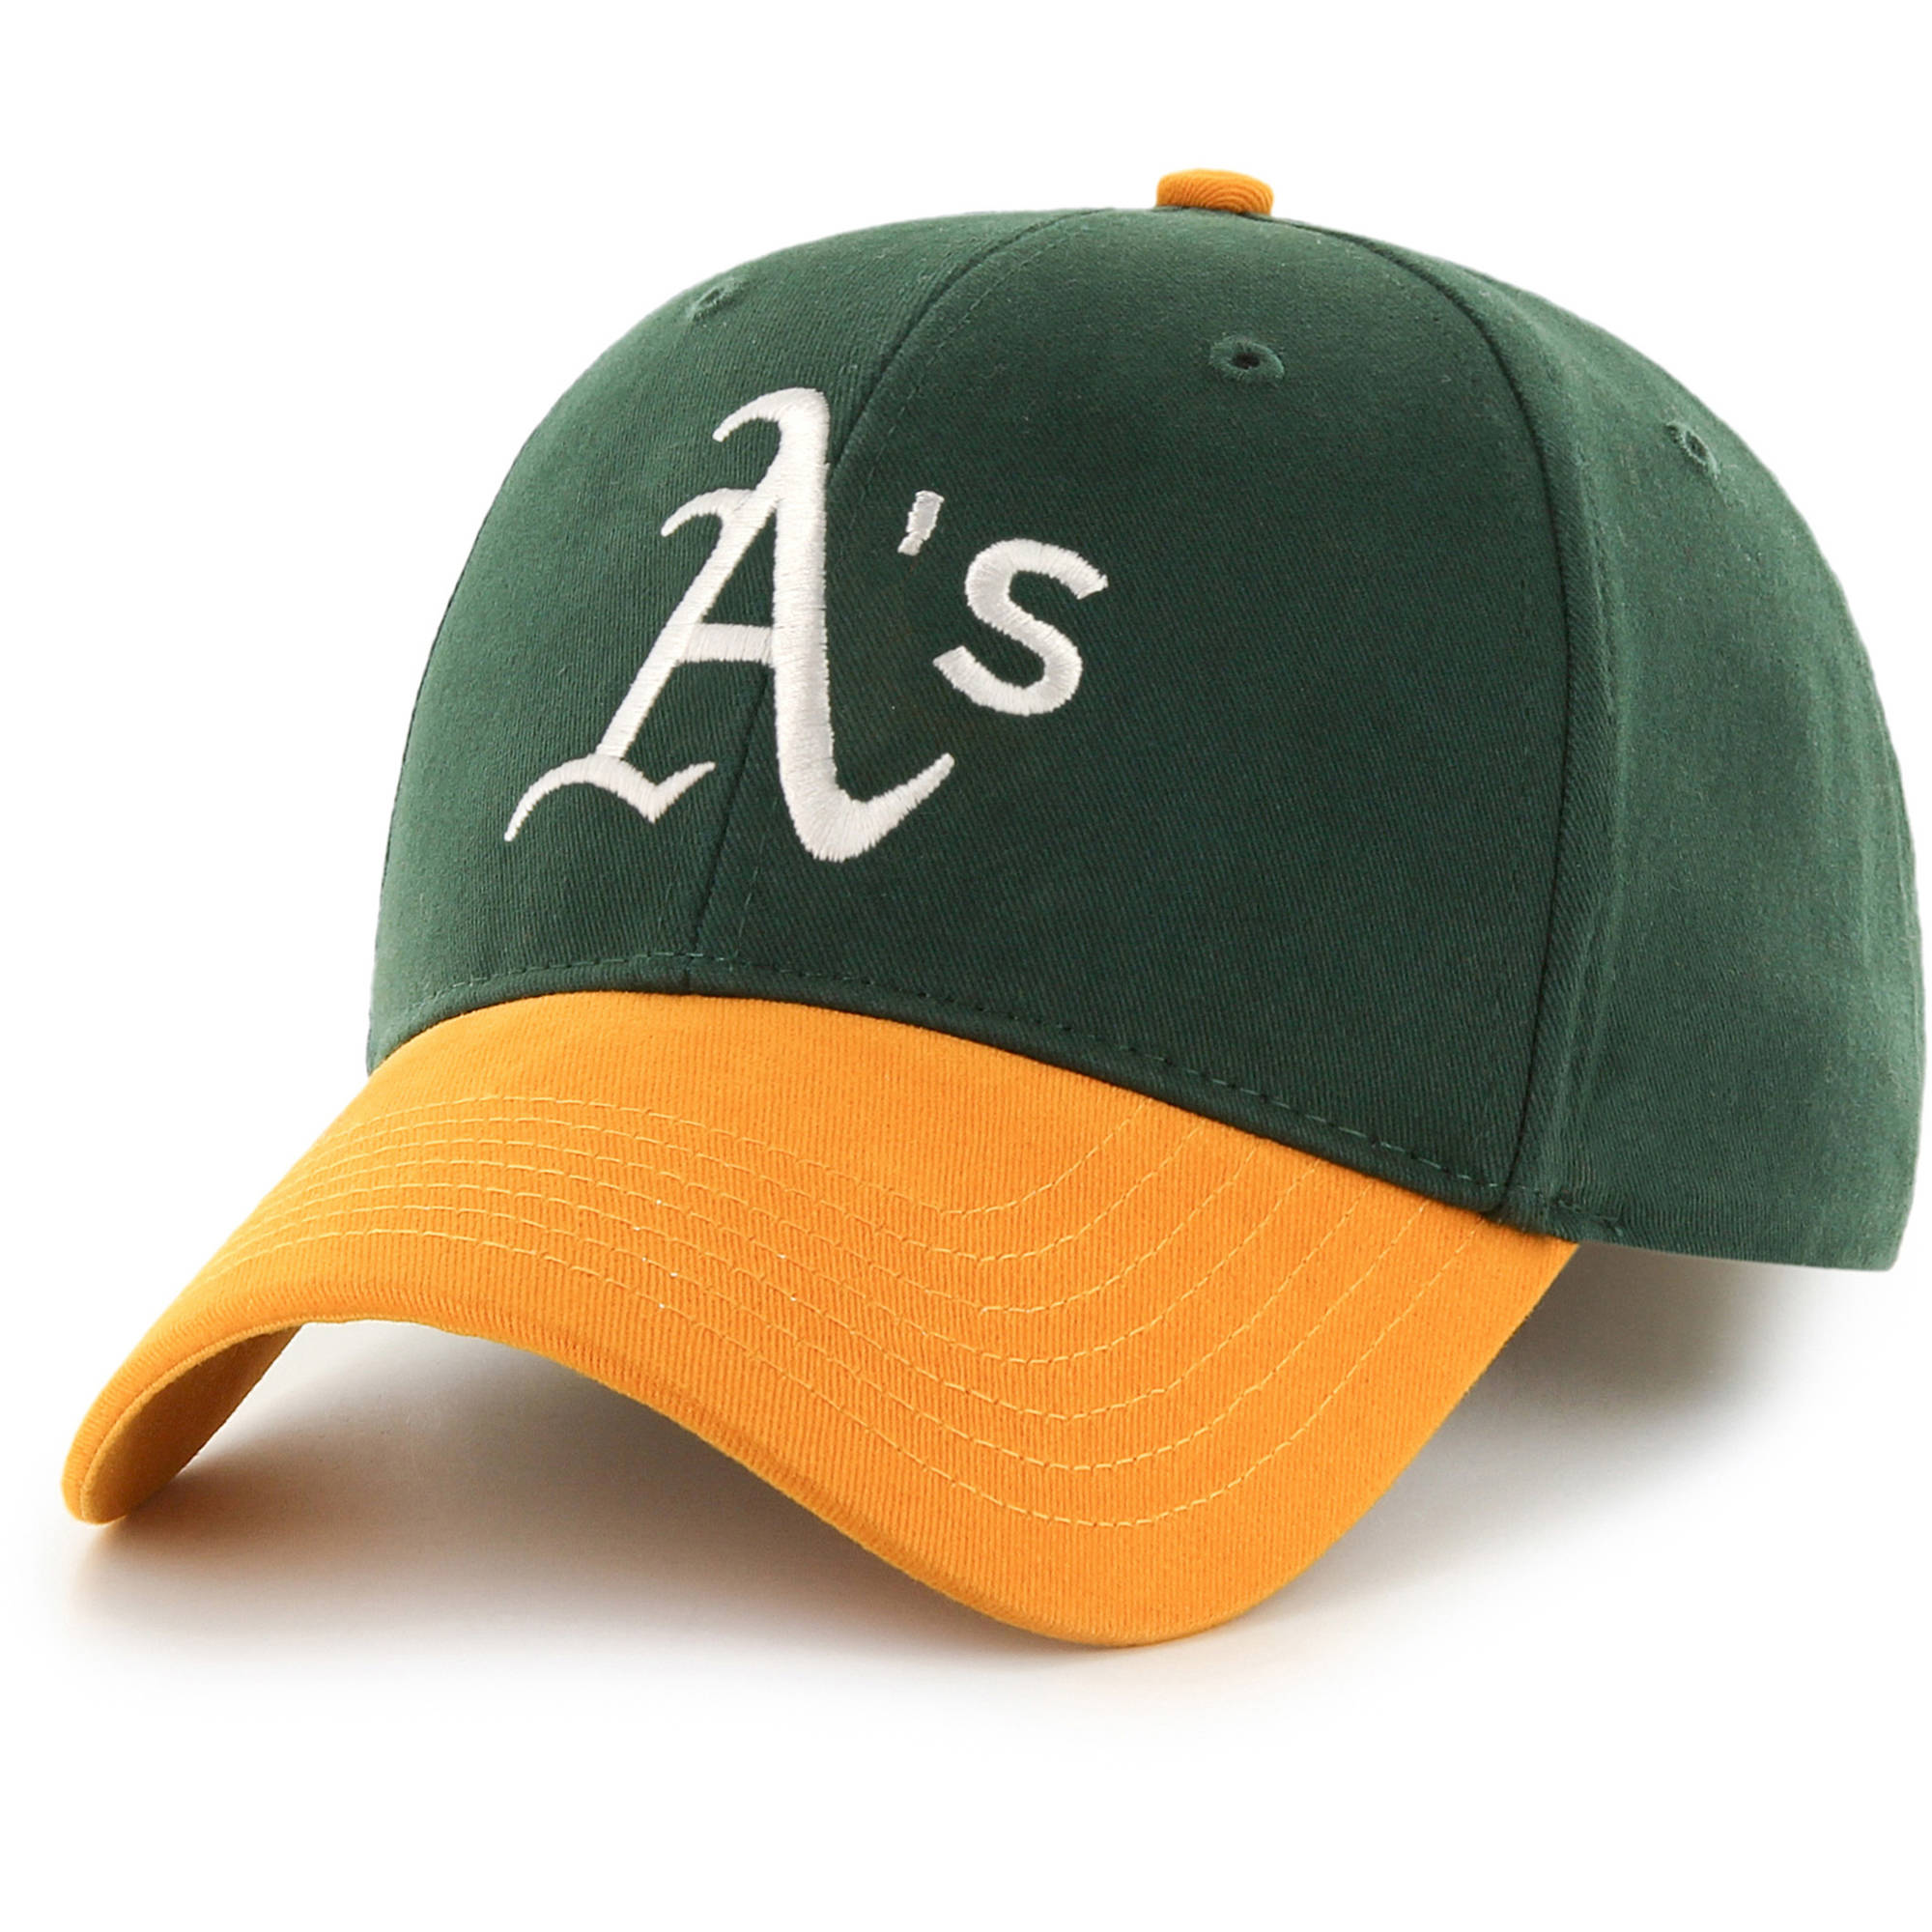 MLB Oakland Athletics Basic Cap / Hat by Fan Favorite